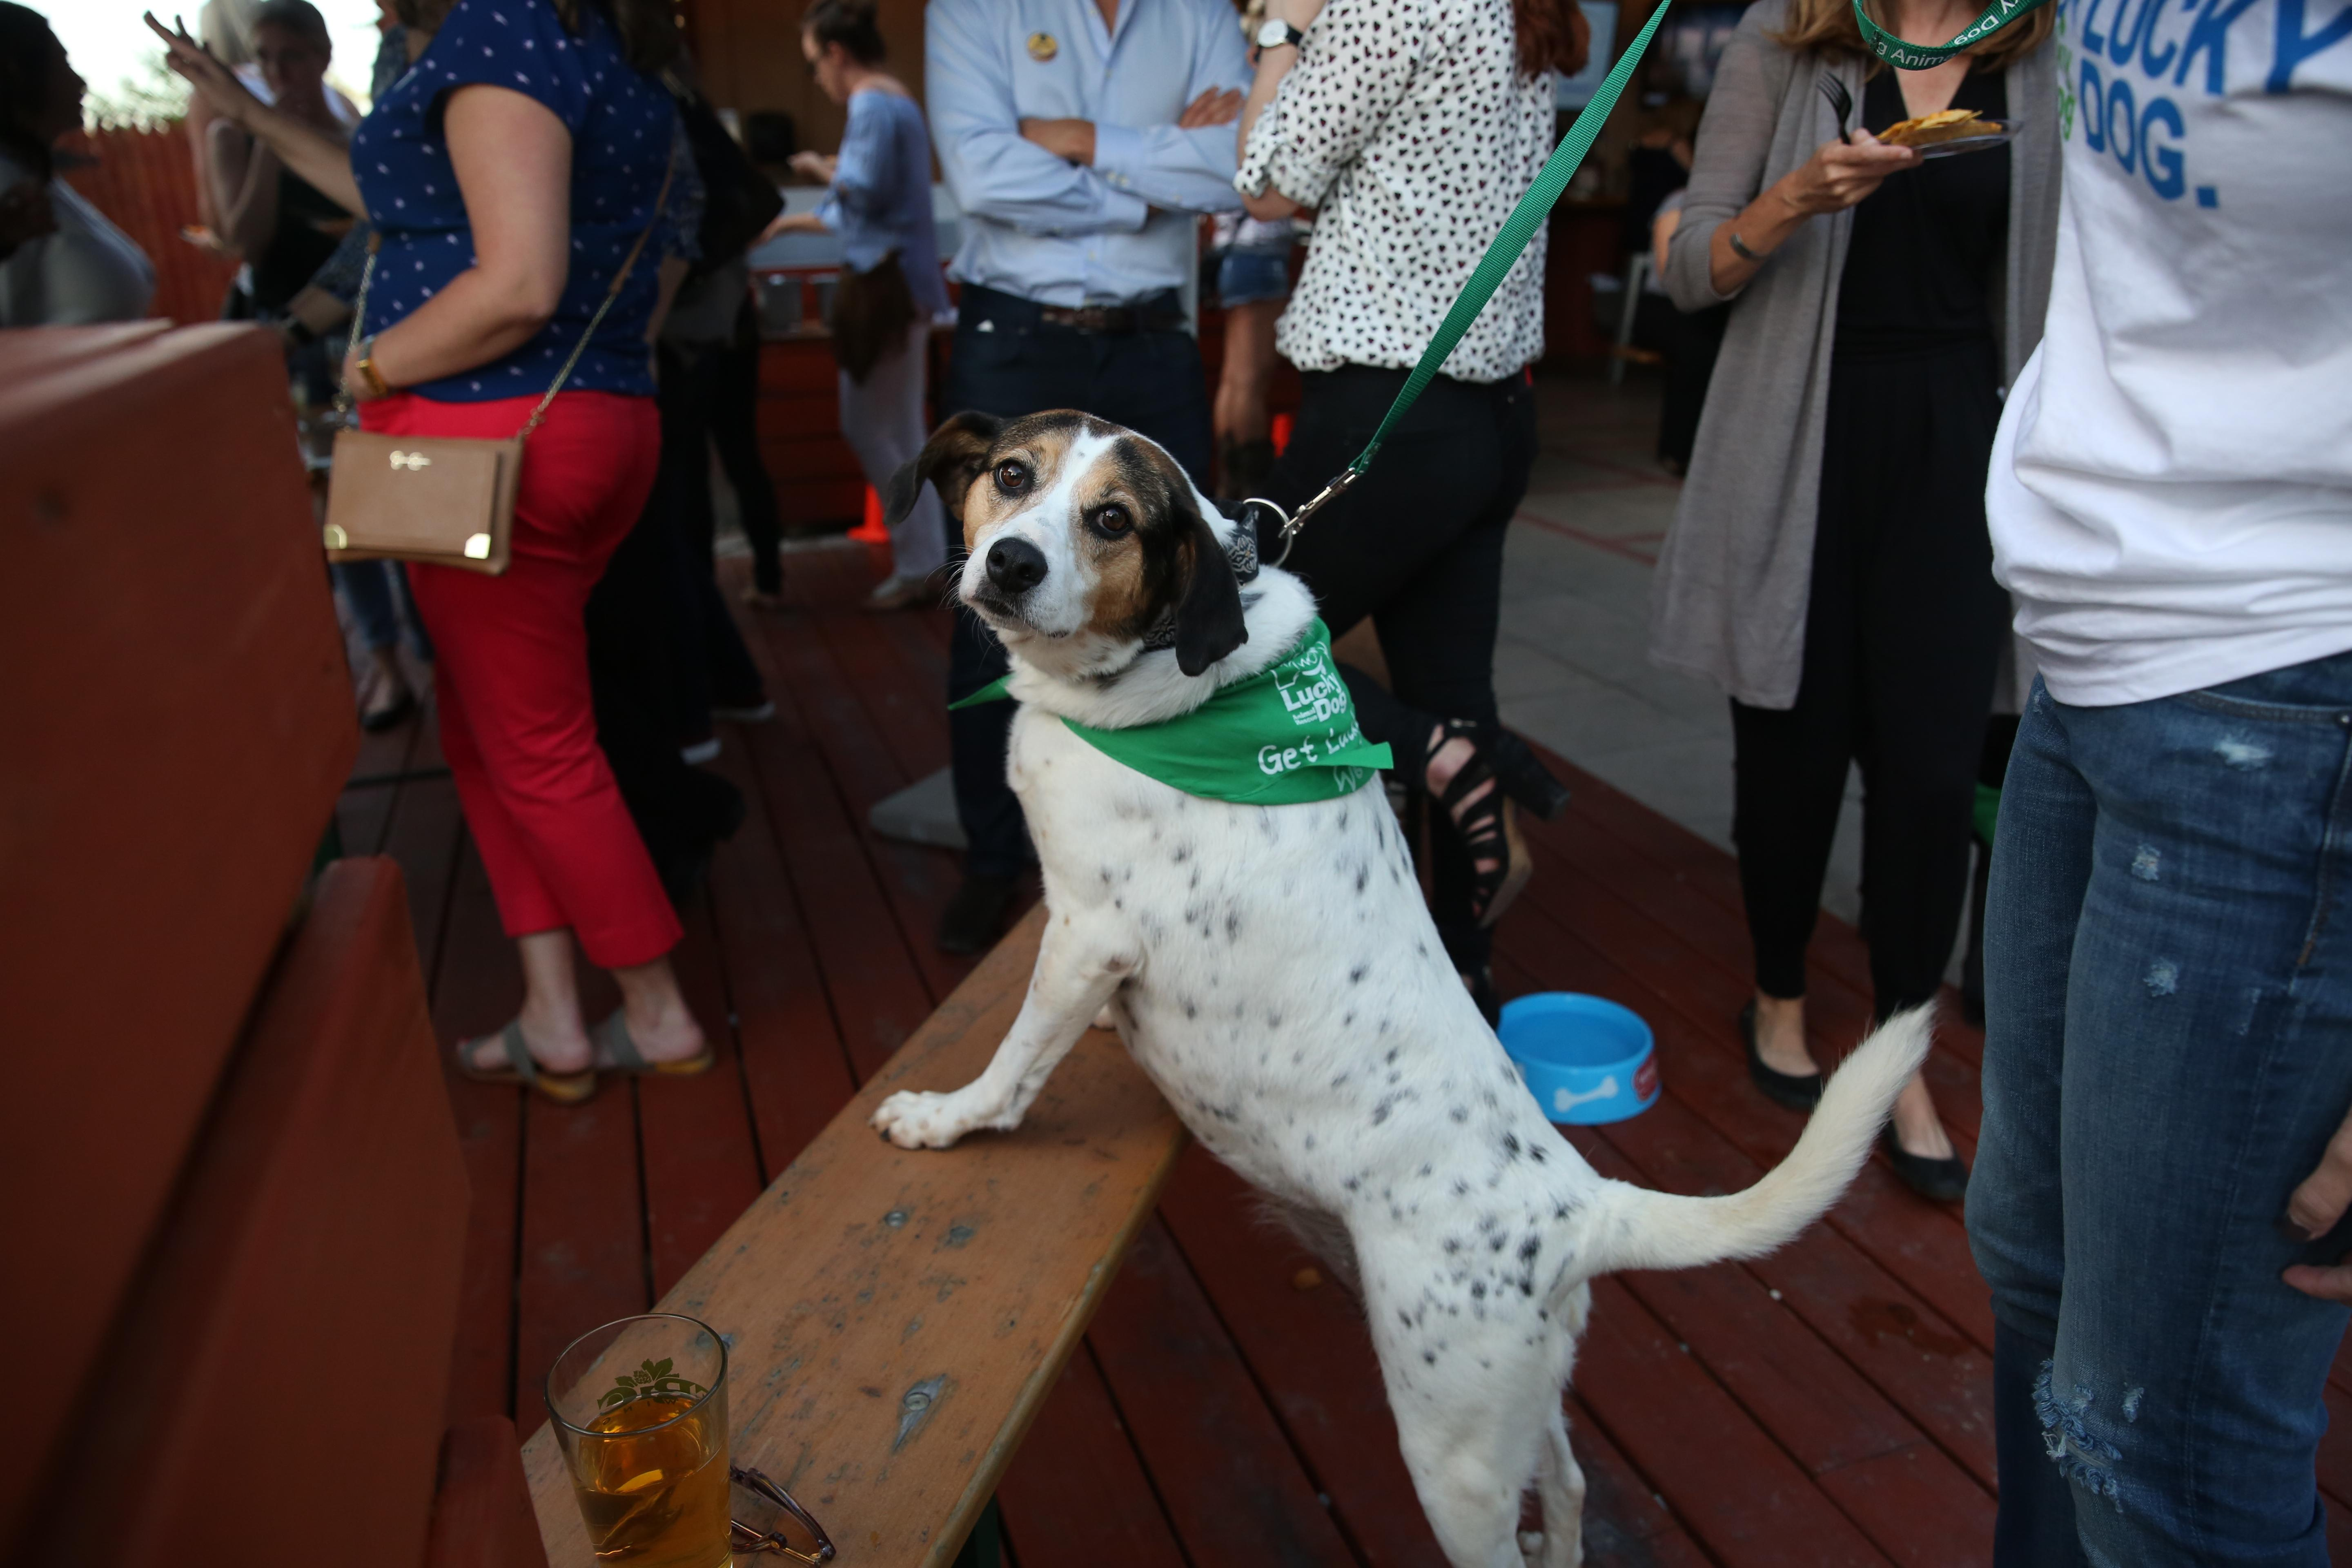 After our photoshoot with D.C.'s most eligible bachelors and adoptable pets from Lucky Dog Rescue, we hosted a yappy hour at The Brig on Sept. 7 so fans could meet our men and maybe walk away with a new best friend! (Amanda Andrade-Rhoades/DC Refined)